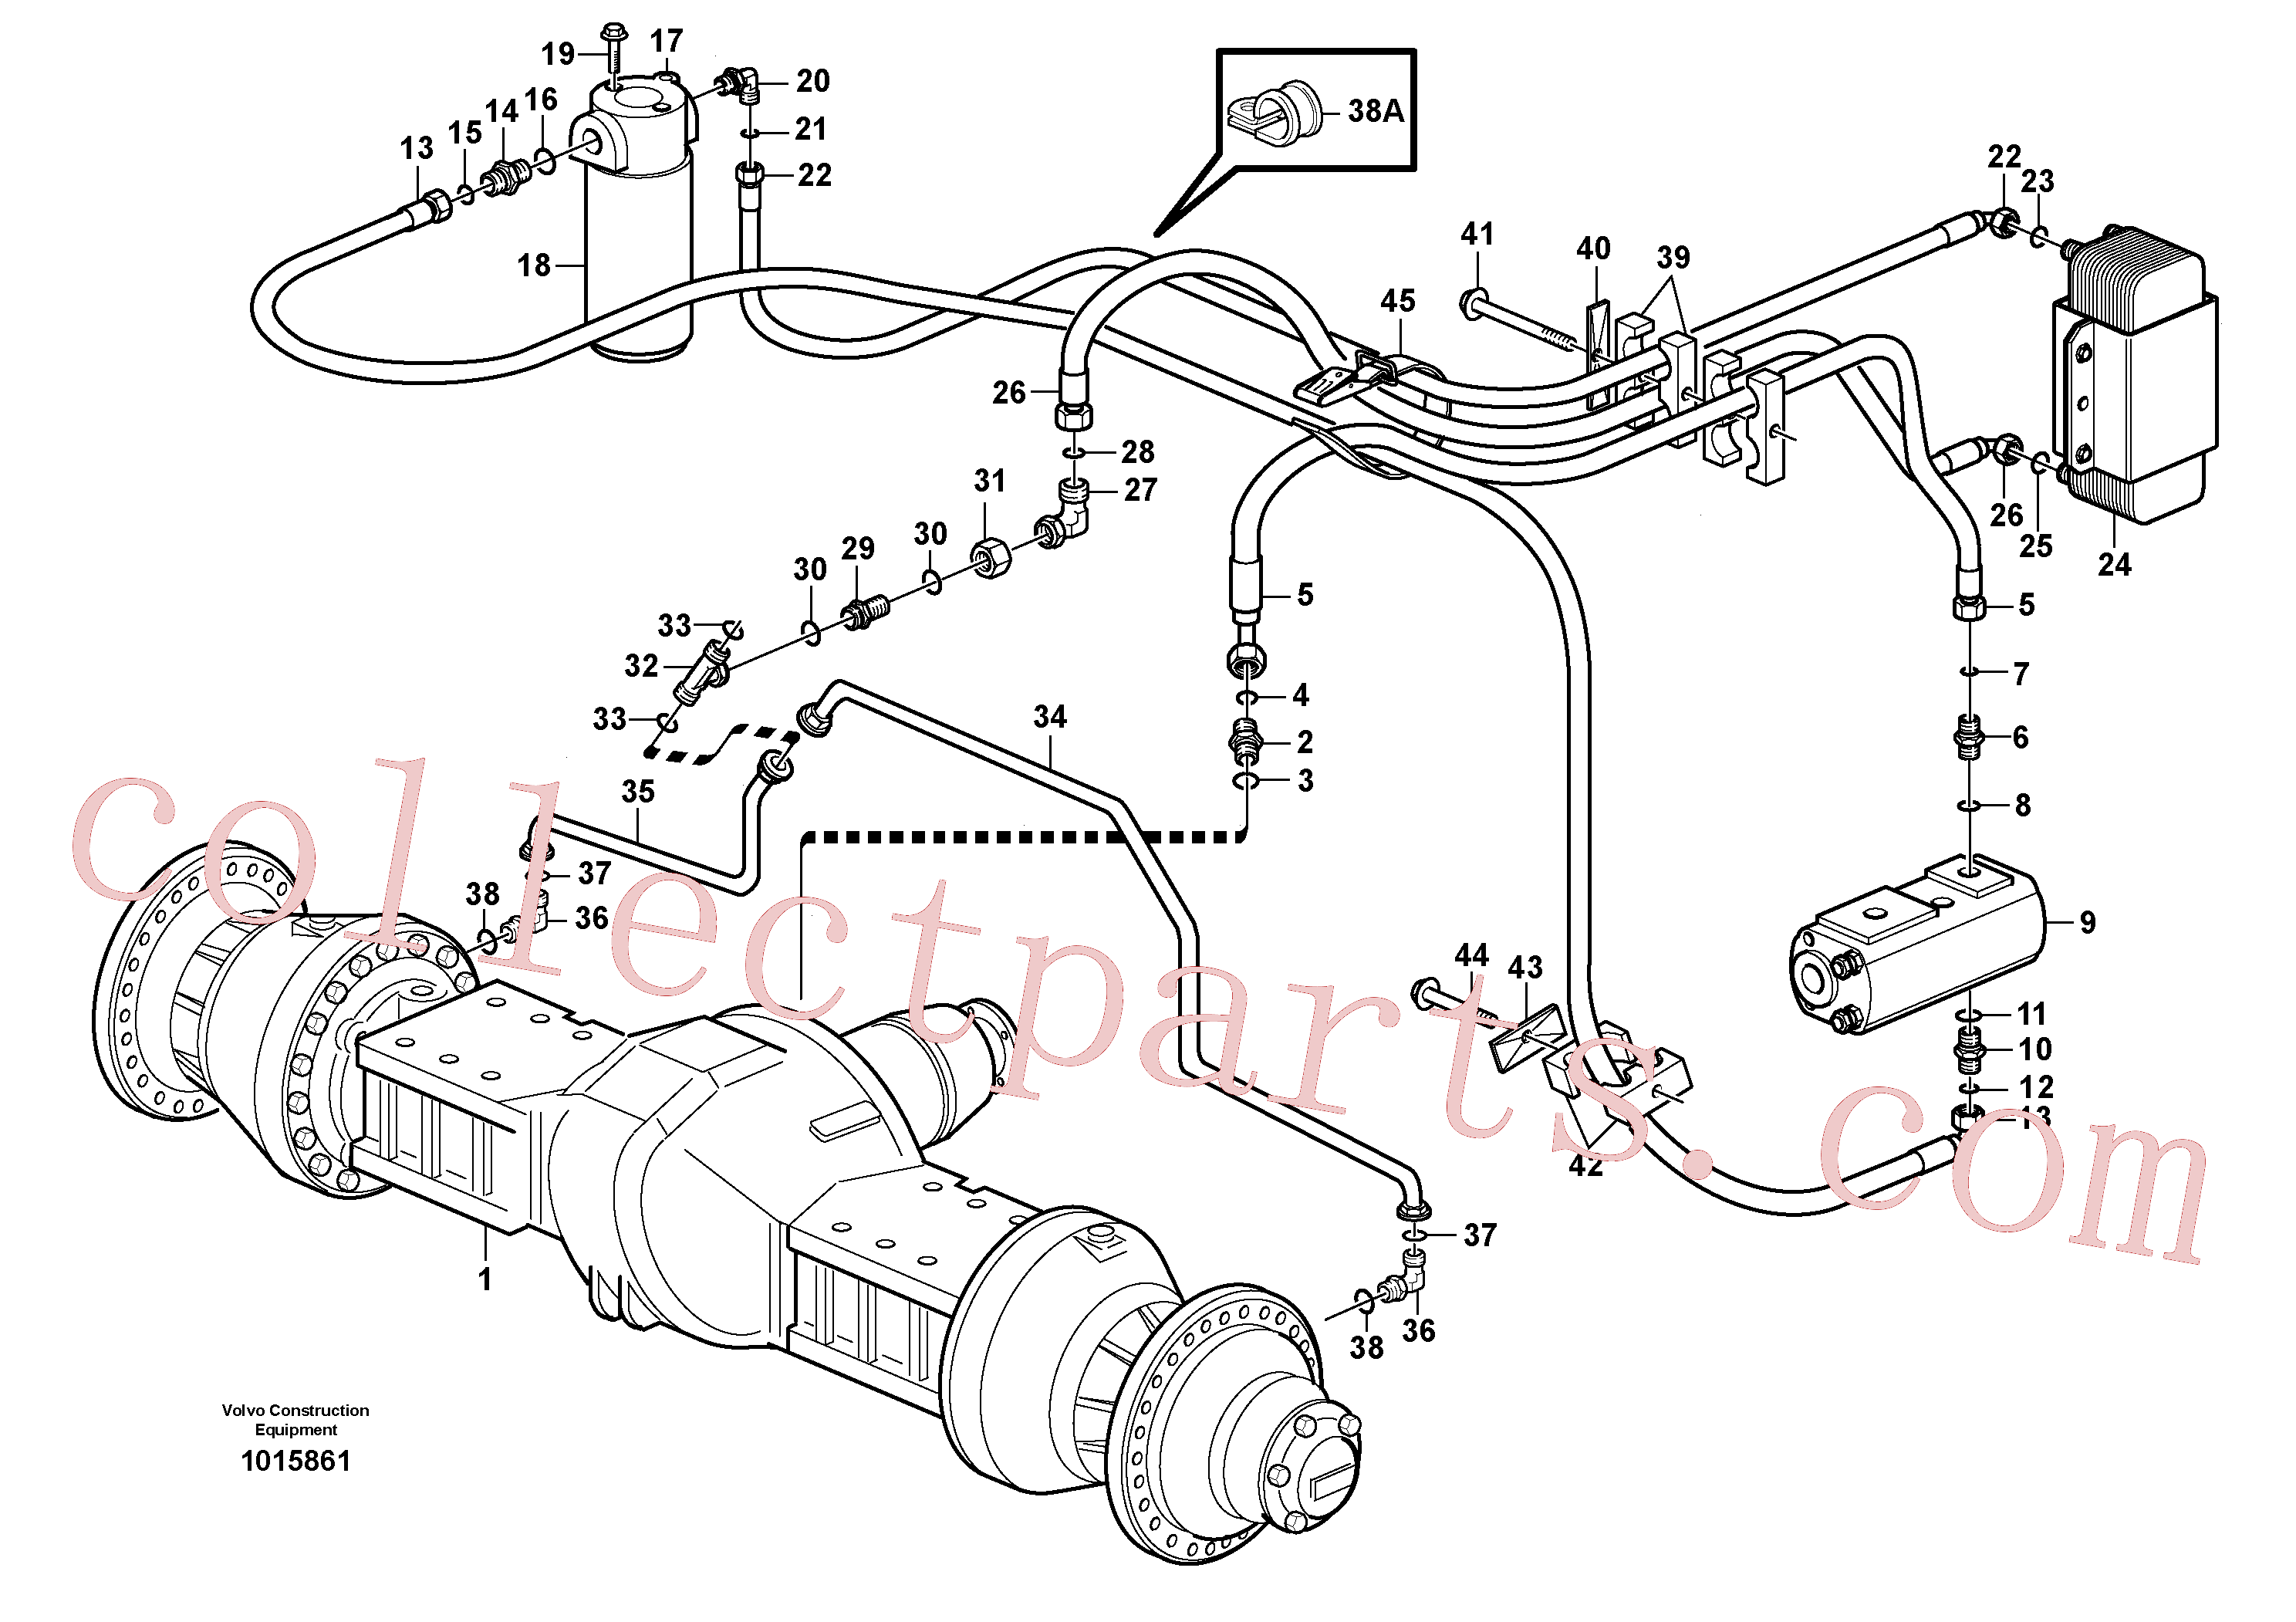 VOE17457469 for Volvo Oil cooler, forword, pump circuit, Oil cooler, forward, pump circuit.(1015861 assembly)